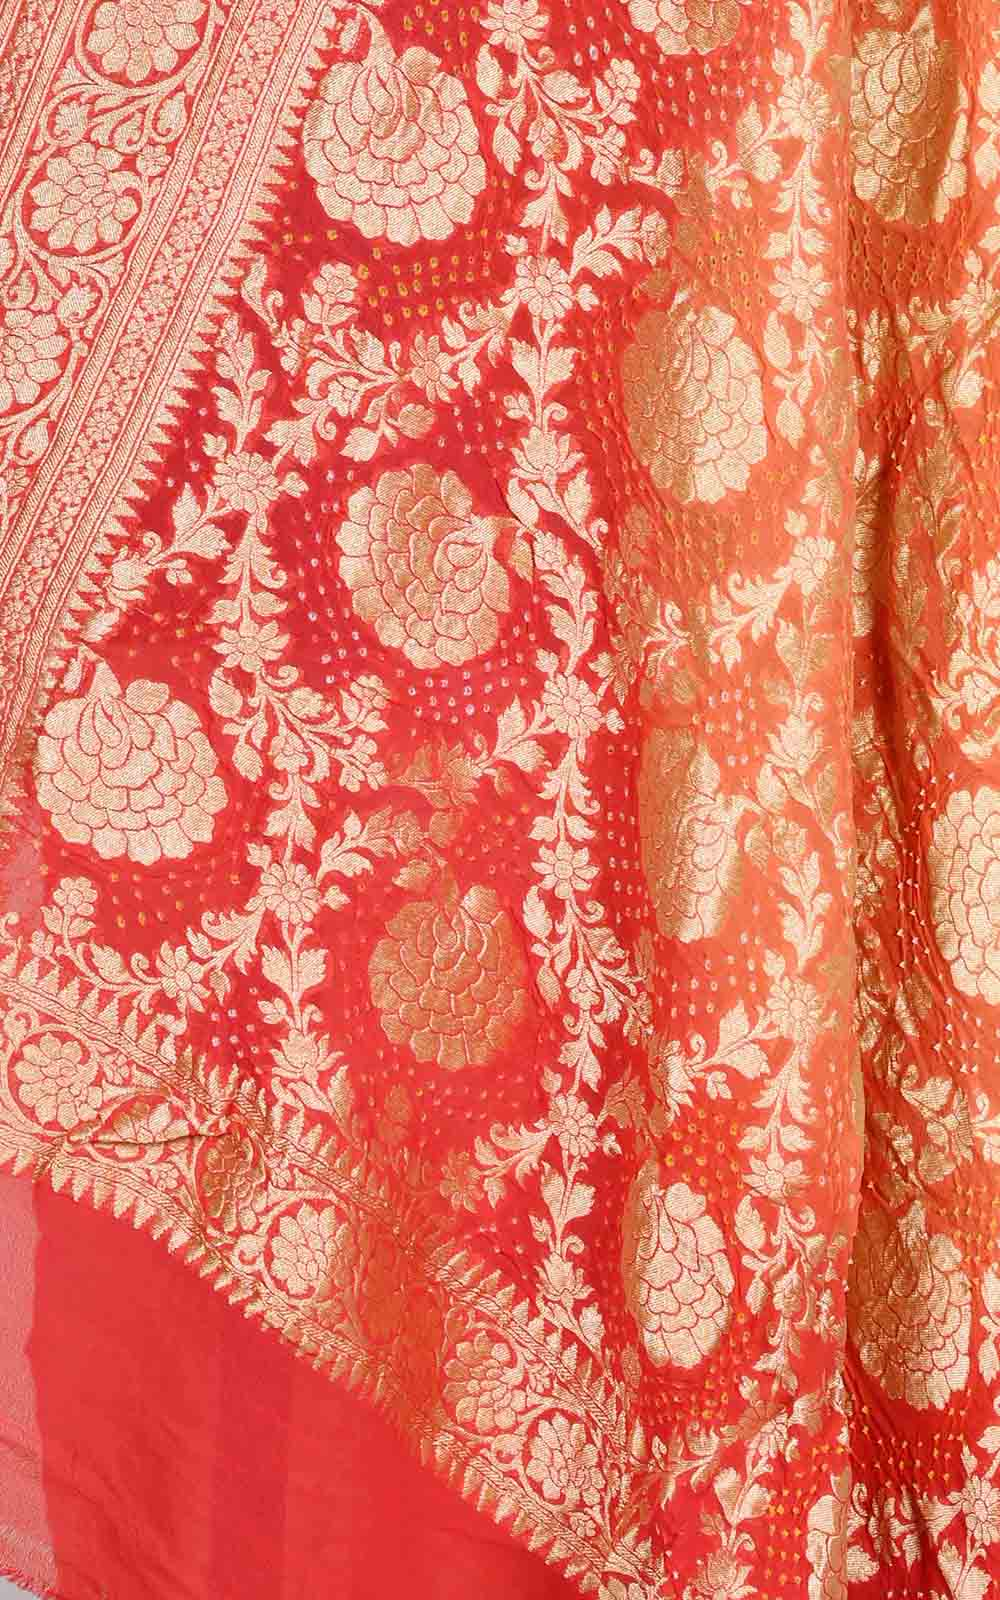 Peach Orange khaddi georgette Bandhani Banarasi dupatta (2) Close up